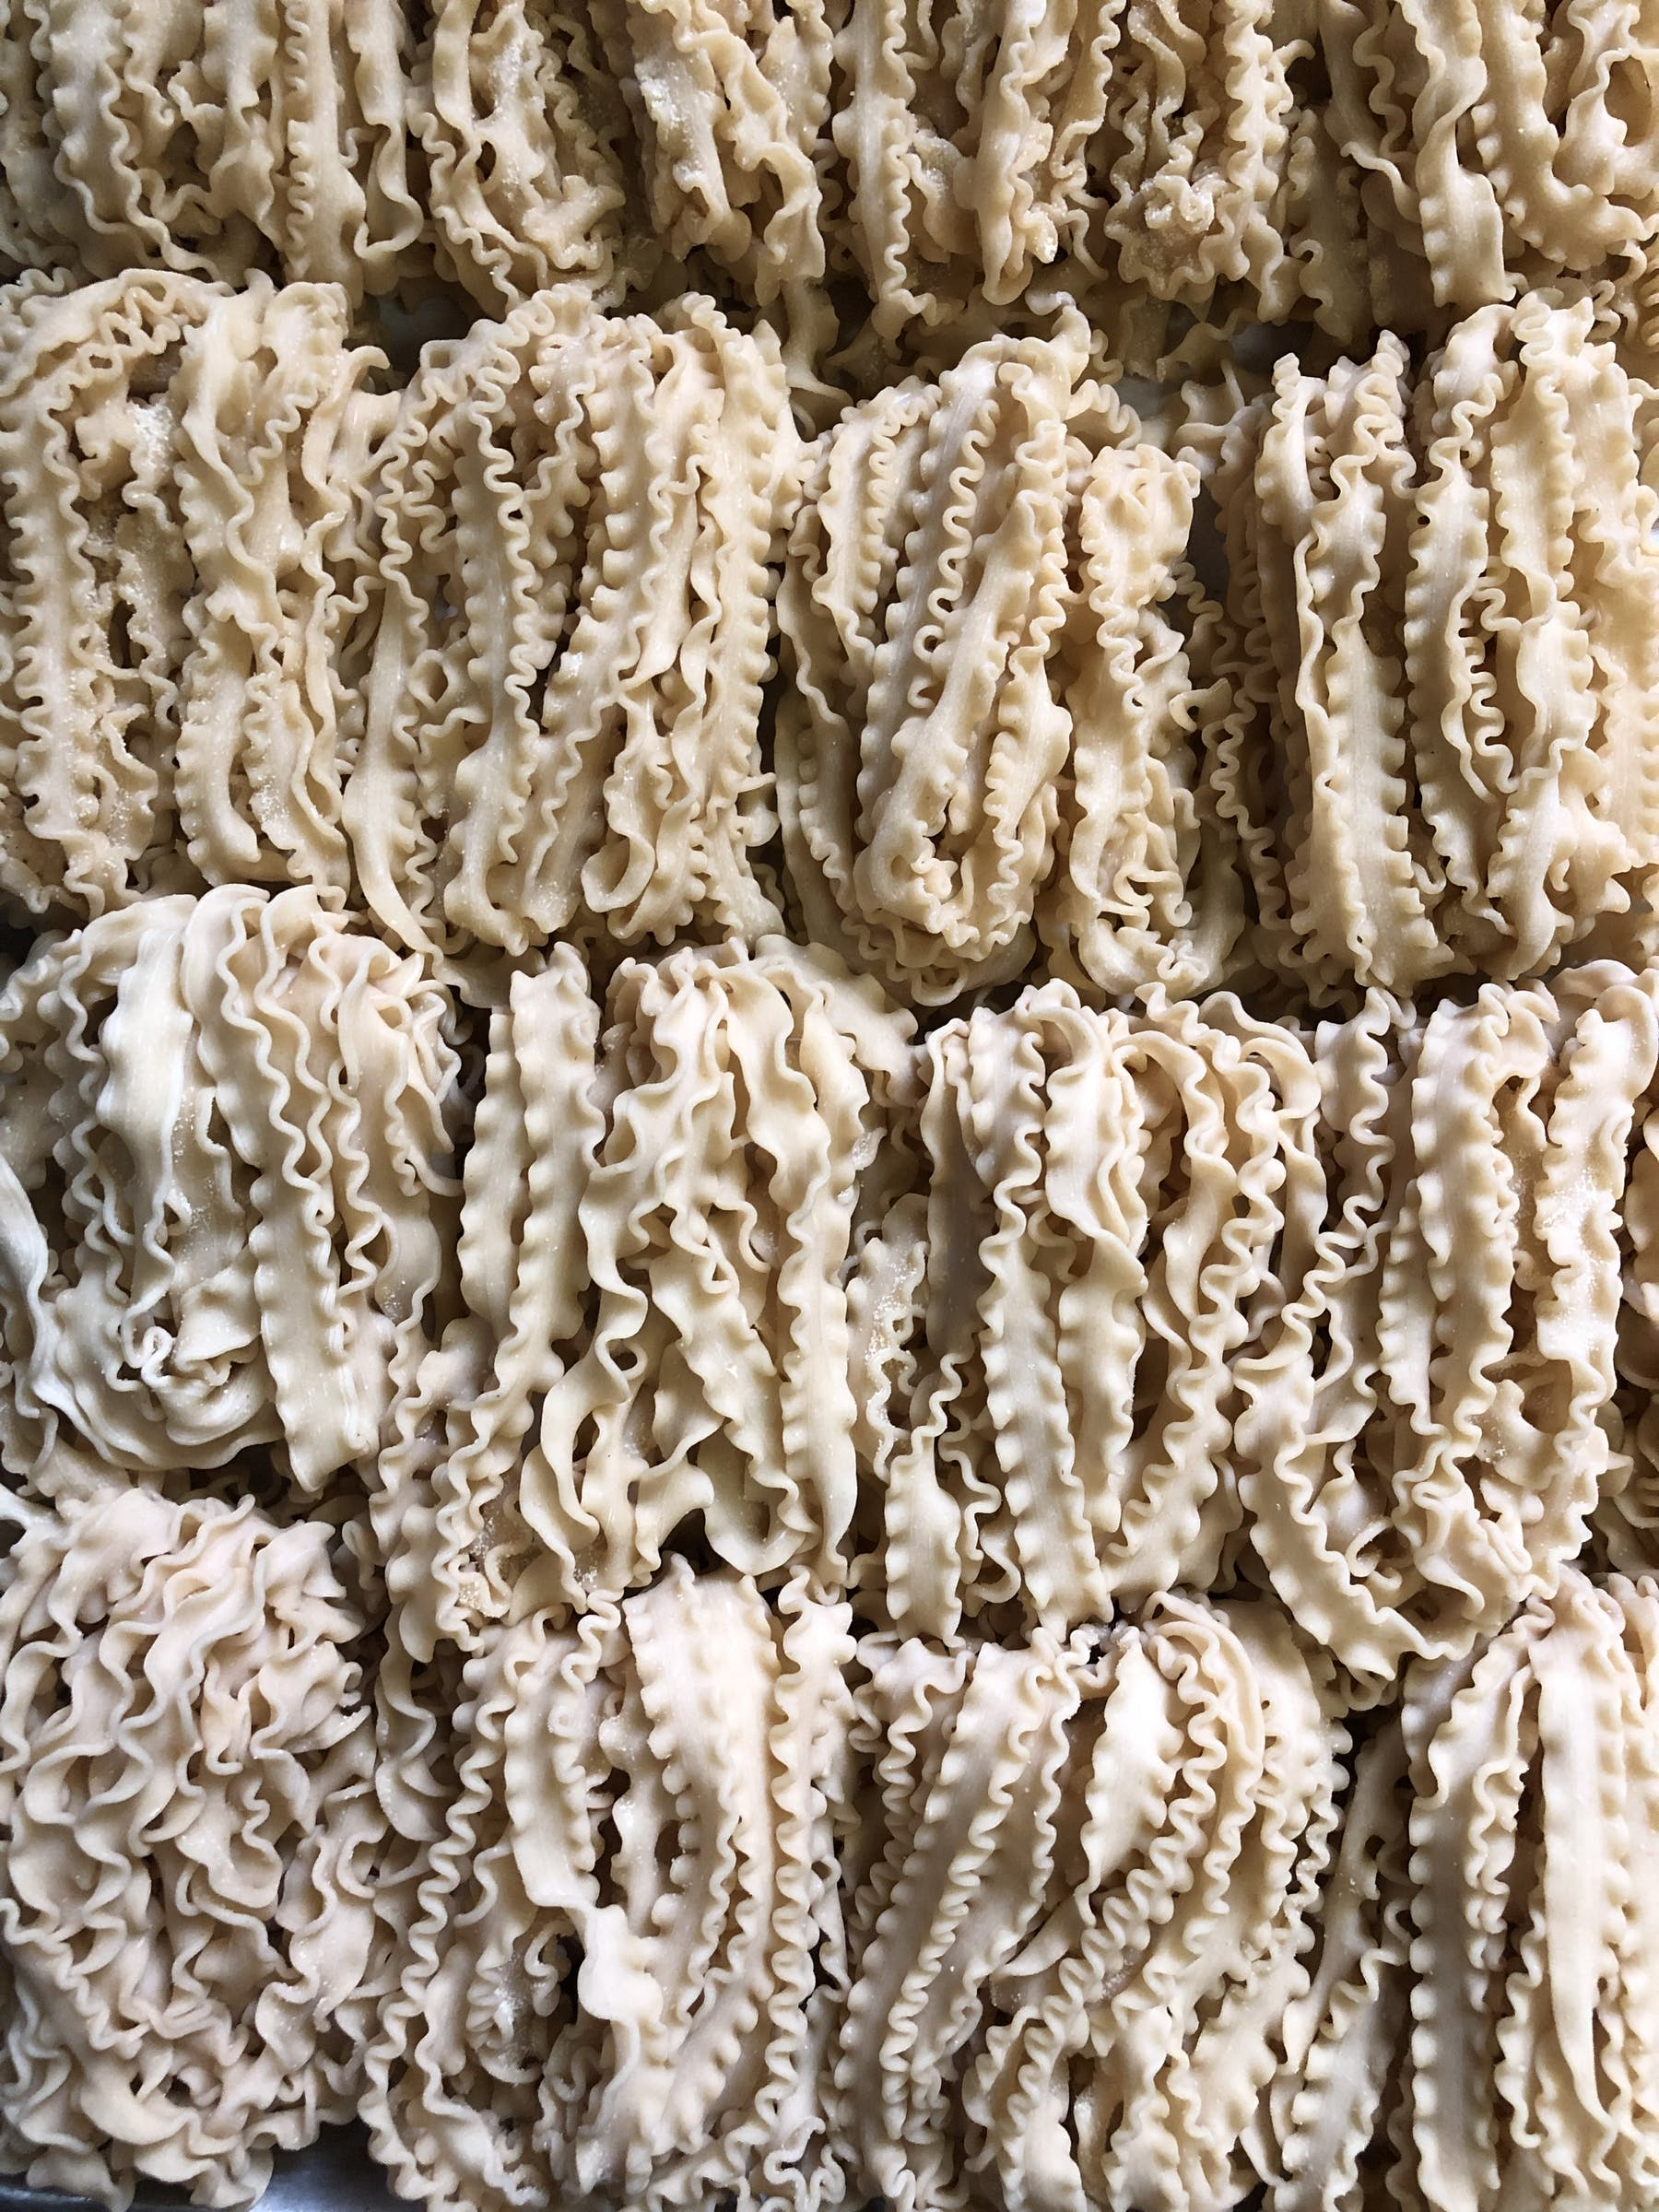 a close up of a pasta